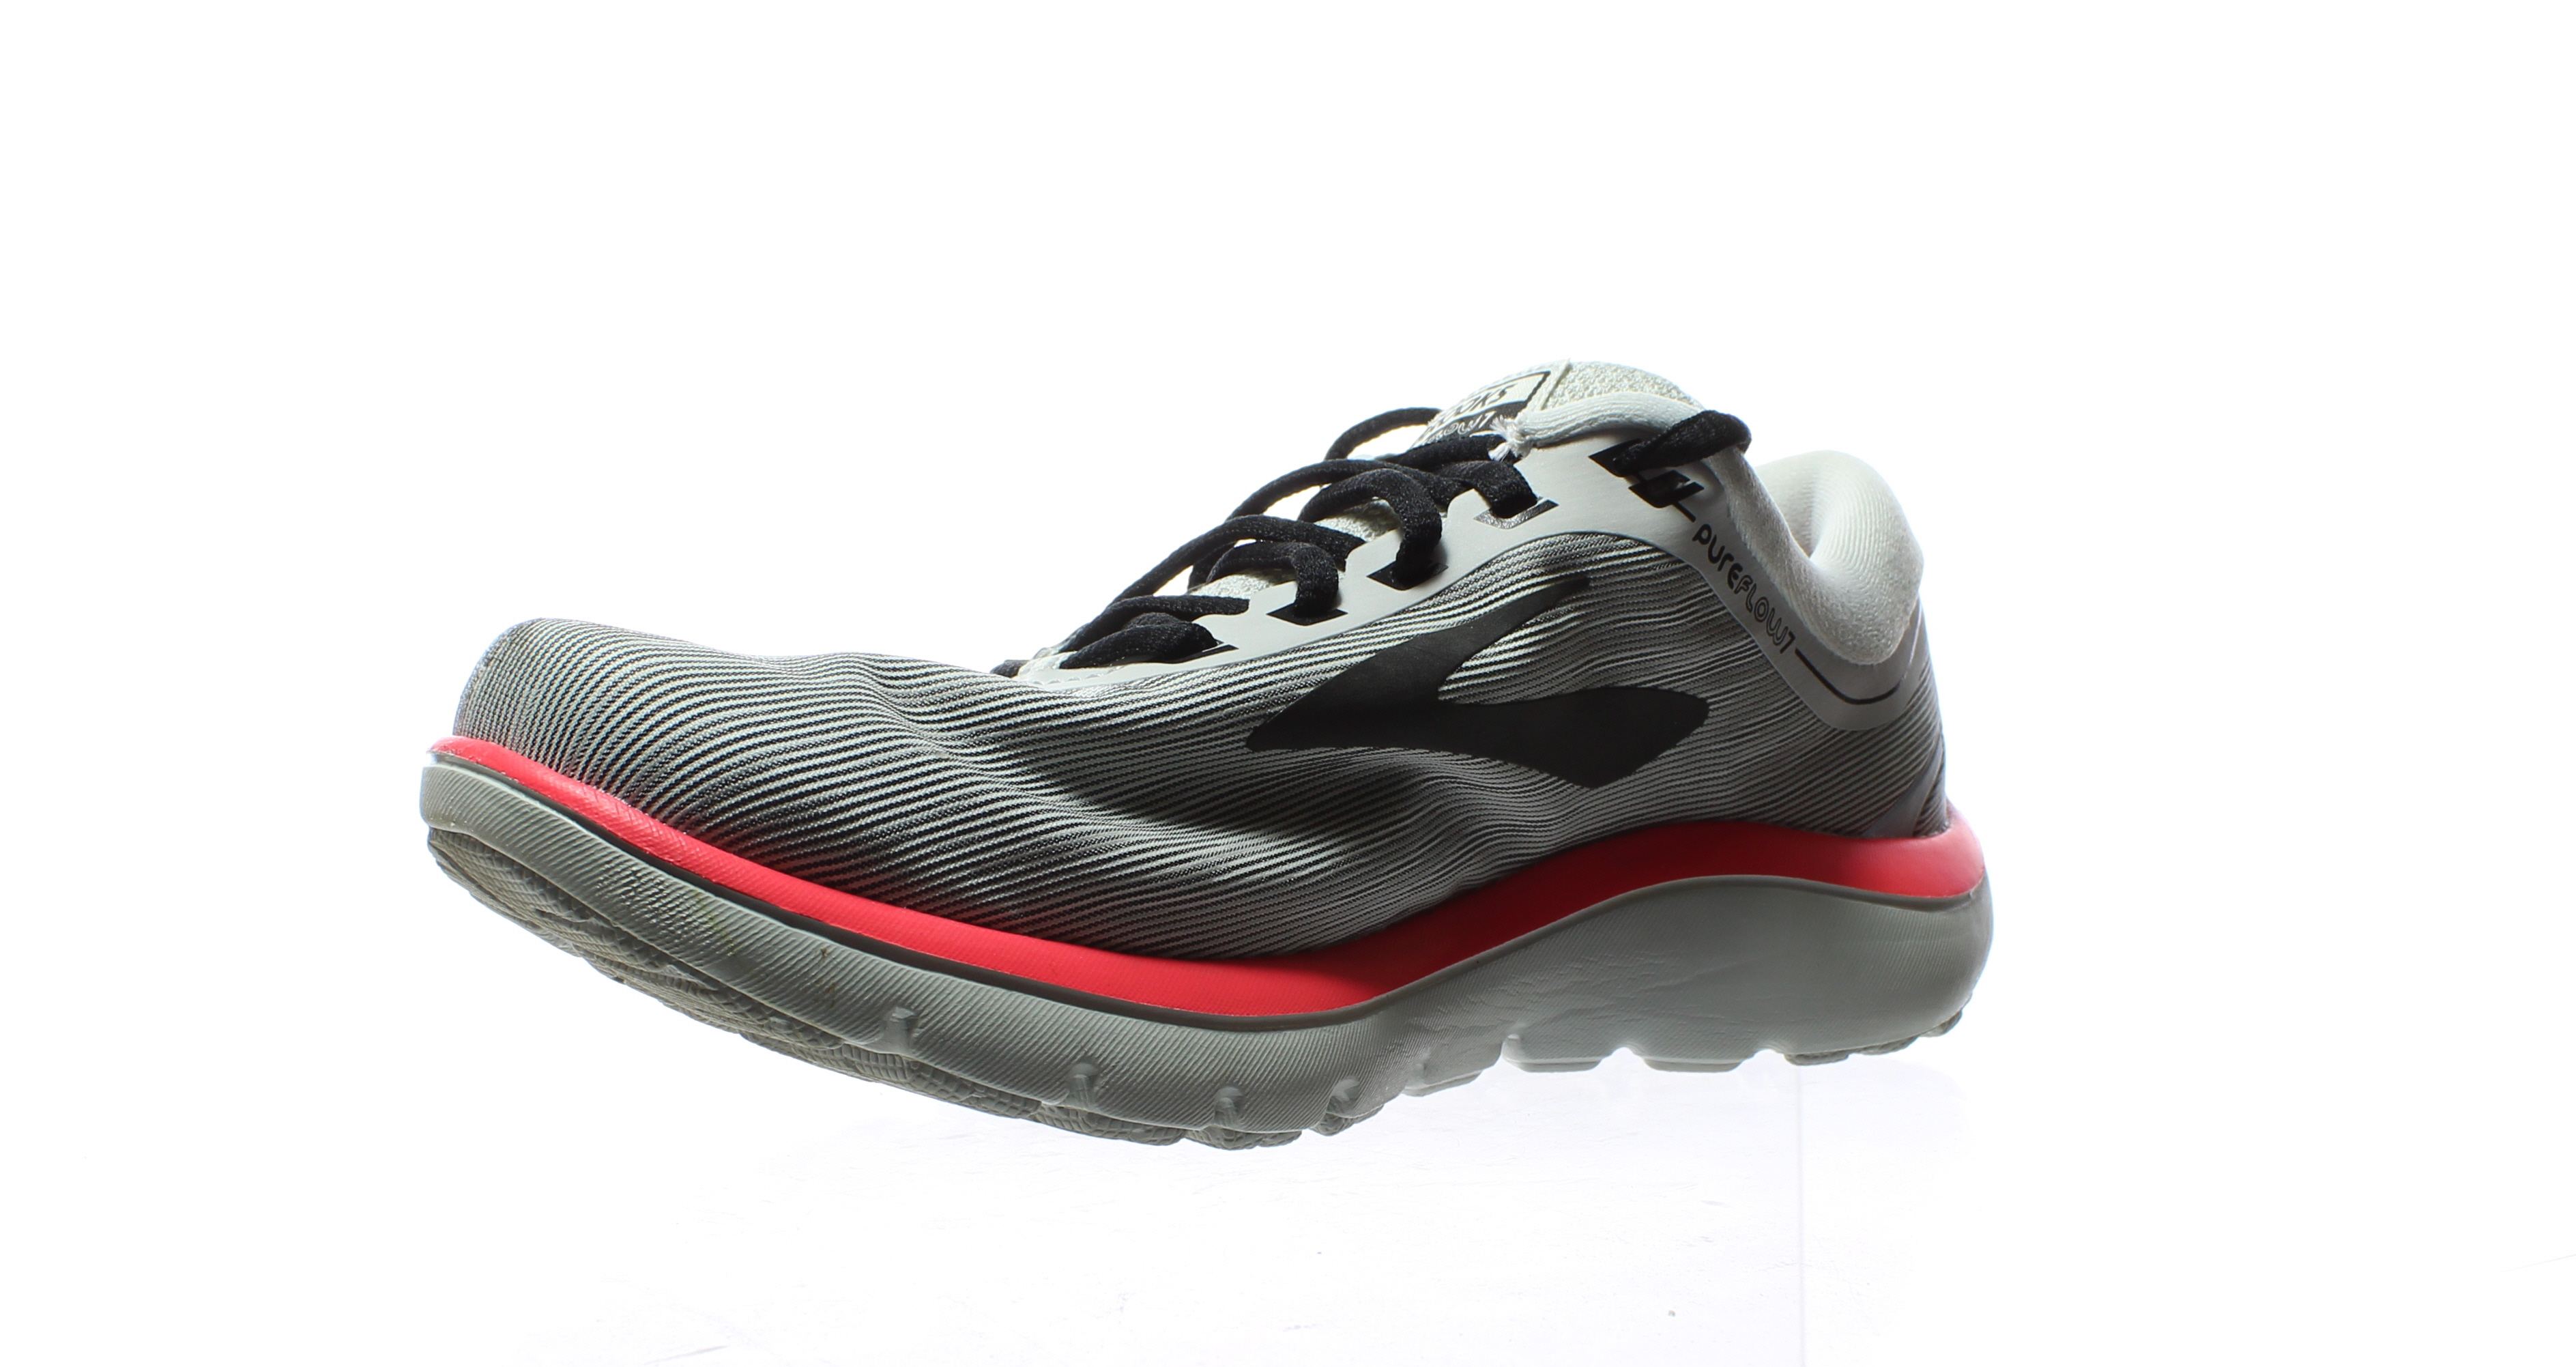 88db50cd743 Brooks Womens Pureflow 7 Grey Black Pink Running Shoes Size 8 ...